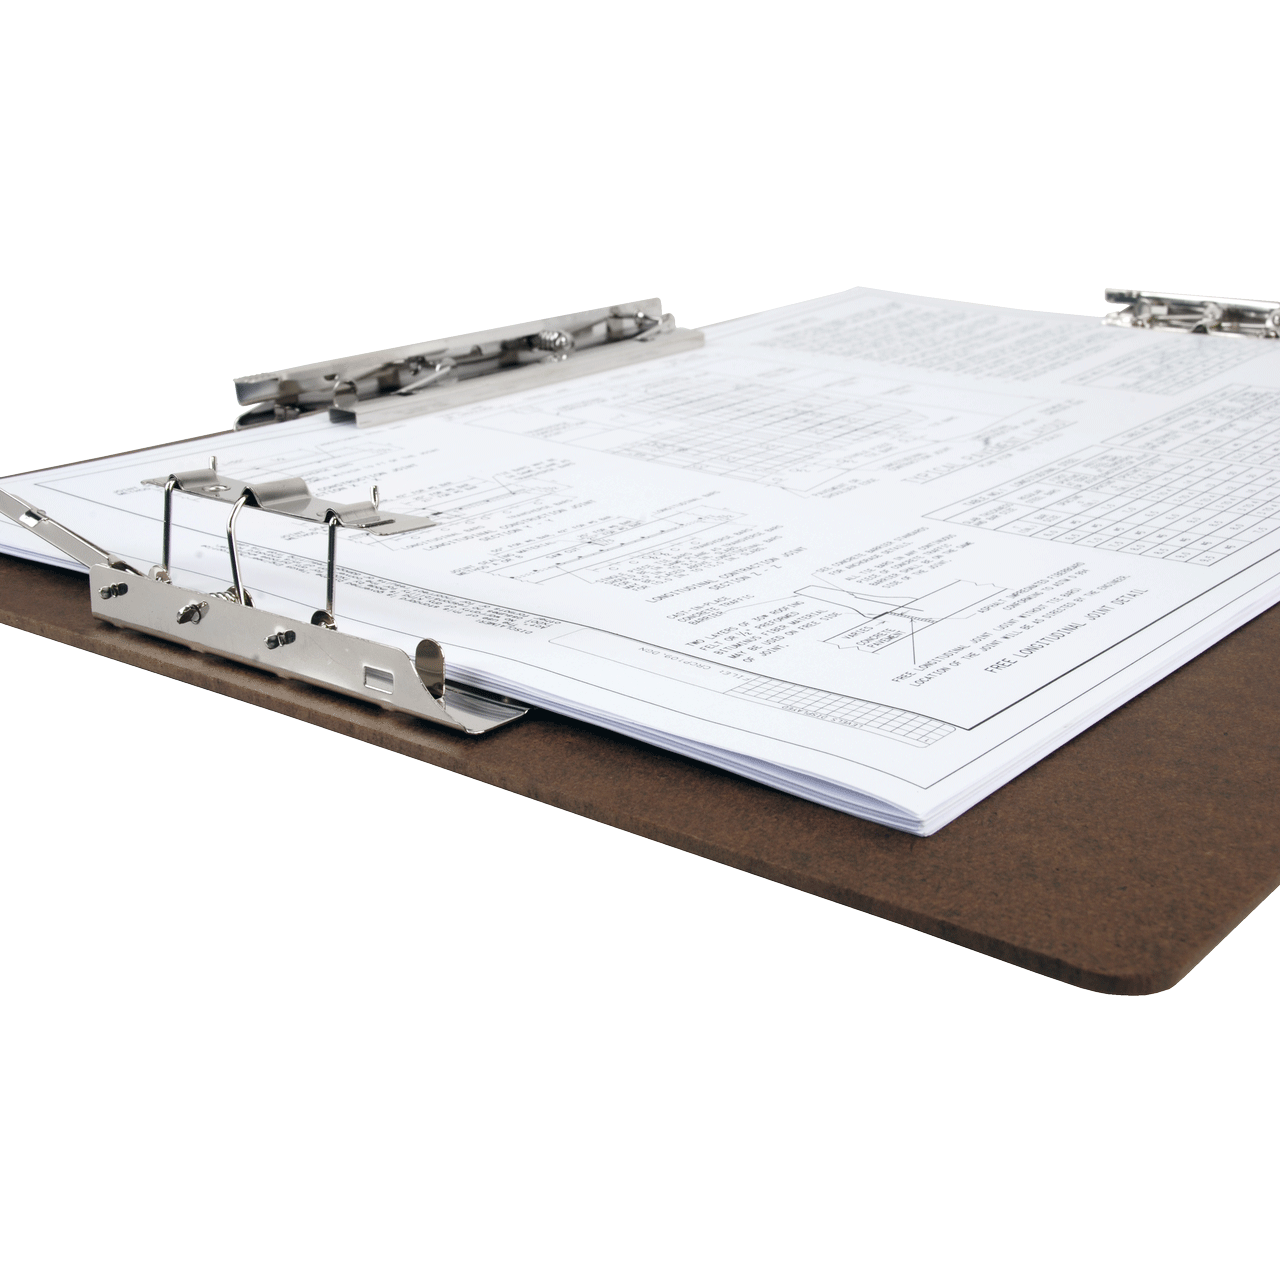 Ball clip binder. X clipboard hardboard